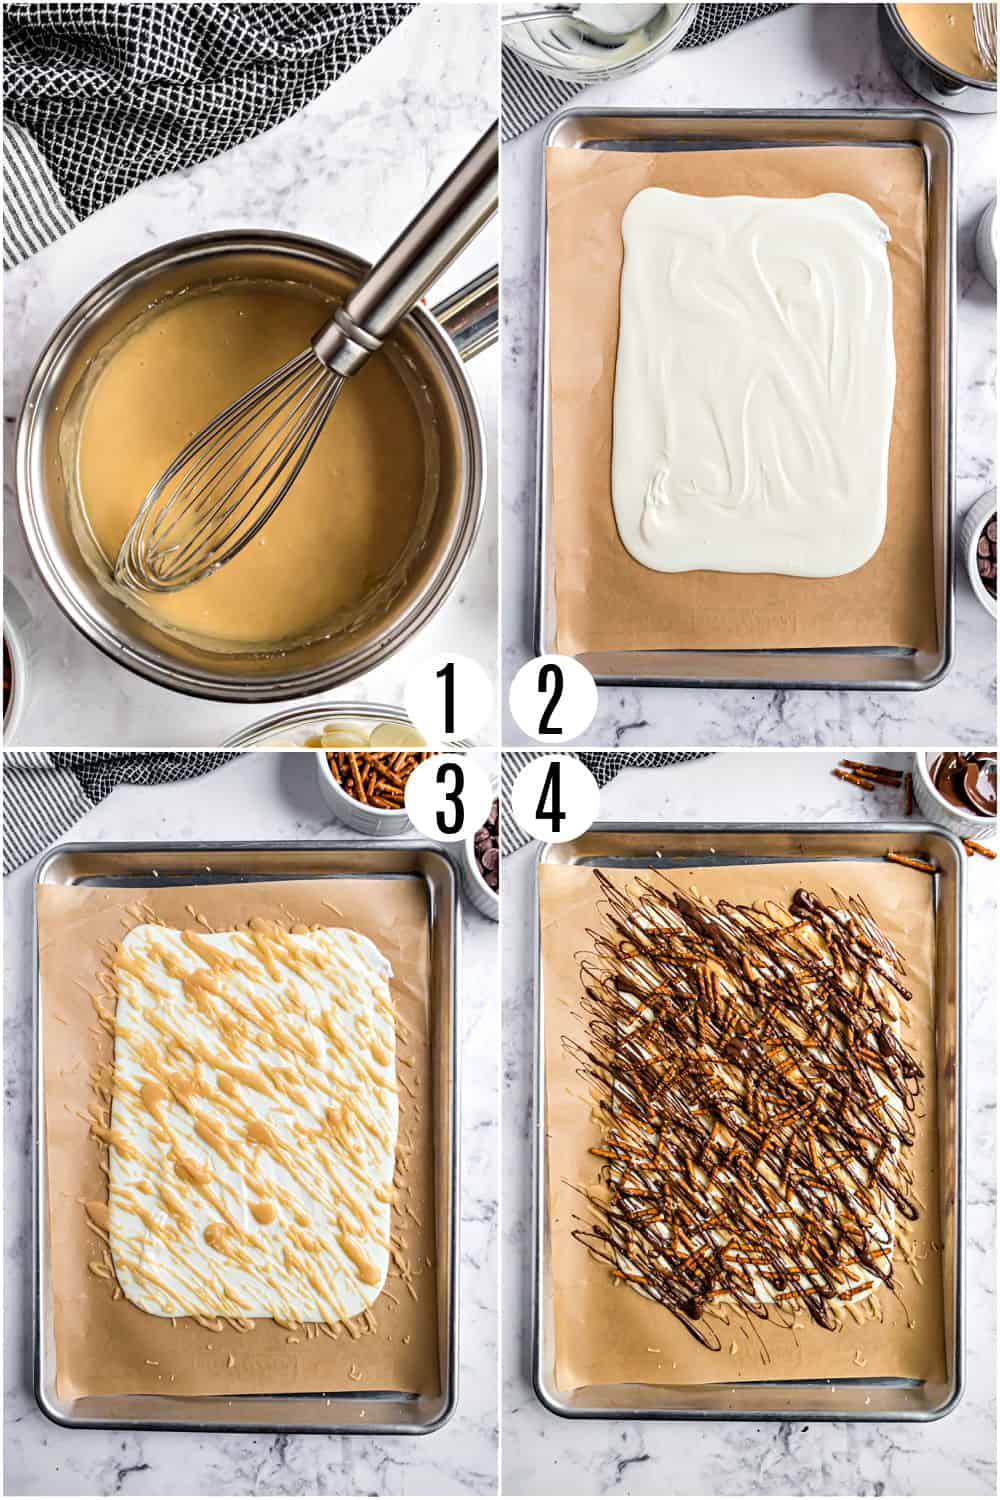 Step by step photos showing how to make salted caramel candy.